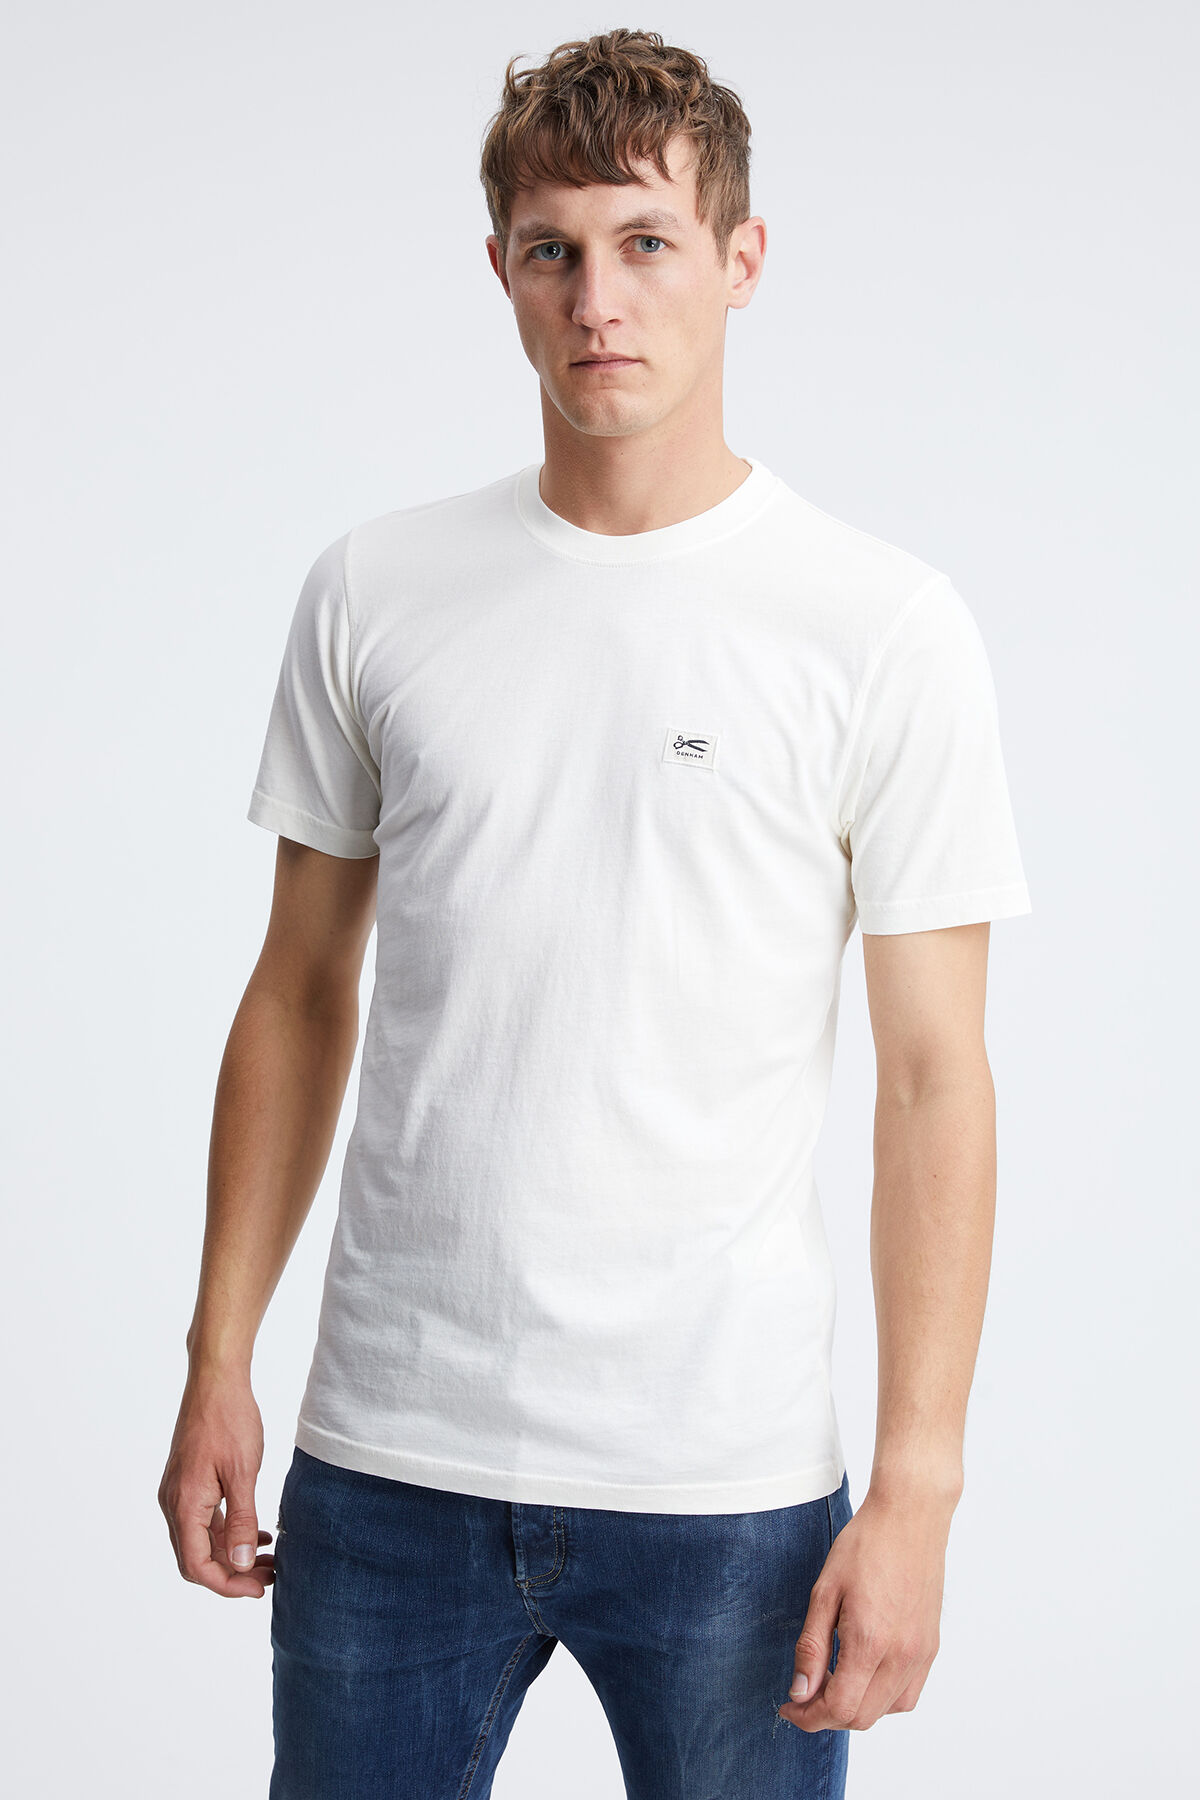 DENHAM APPLIQUE TEE Modal Jersey - Slim Fit